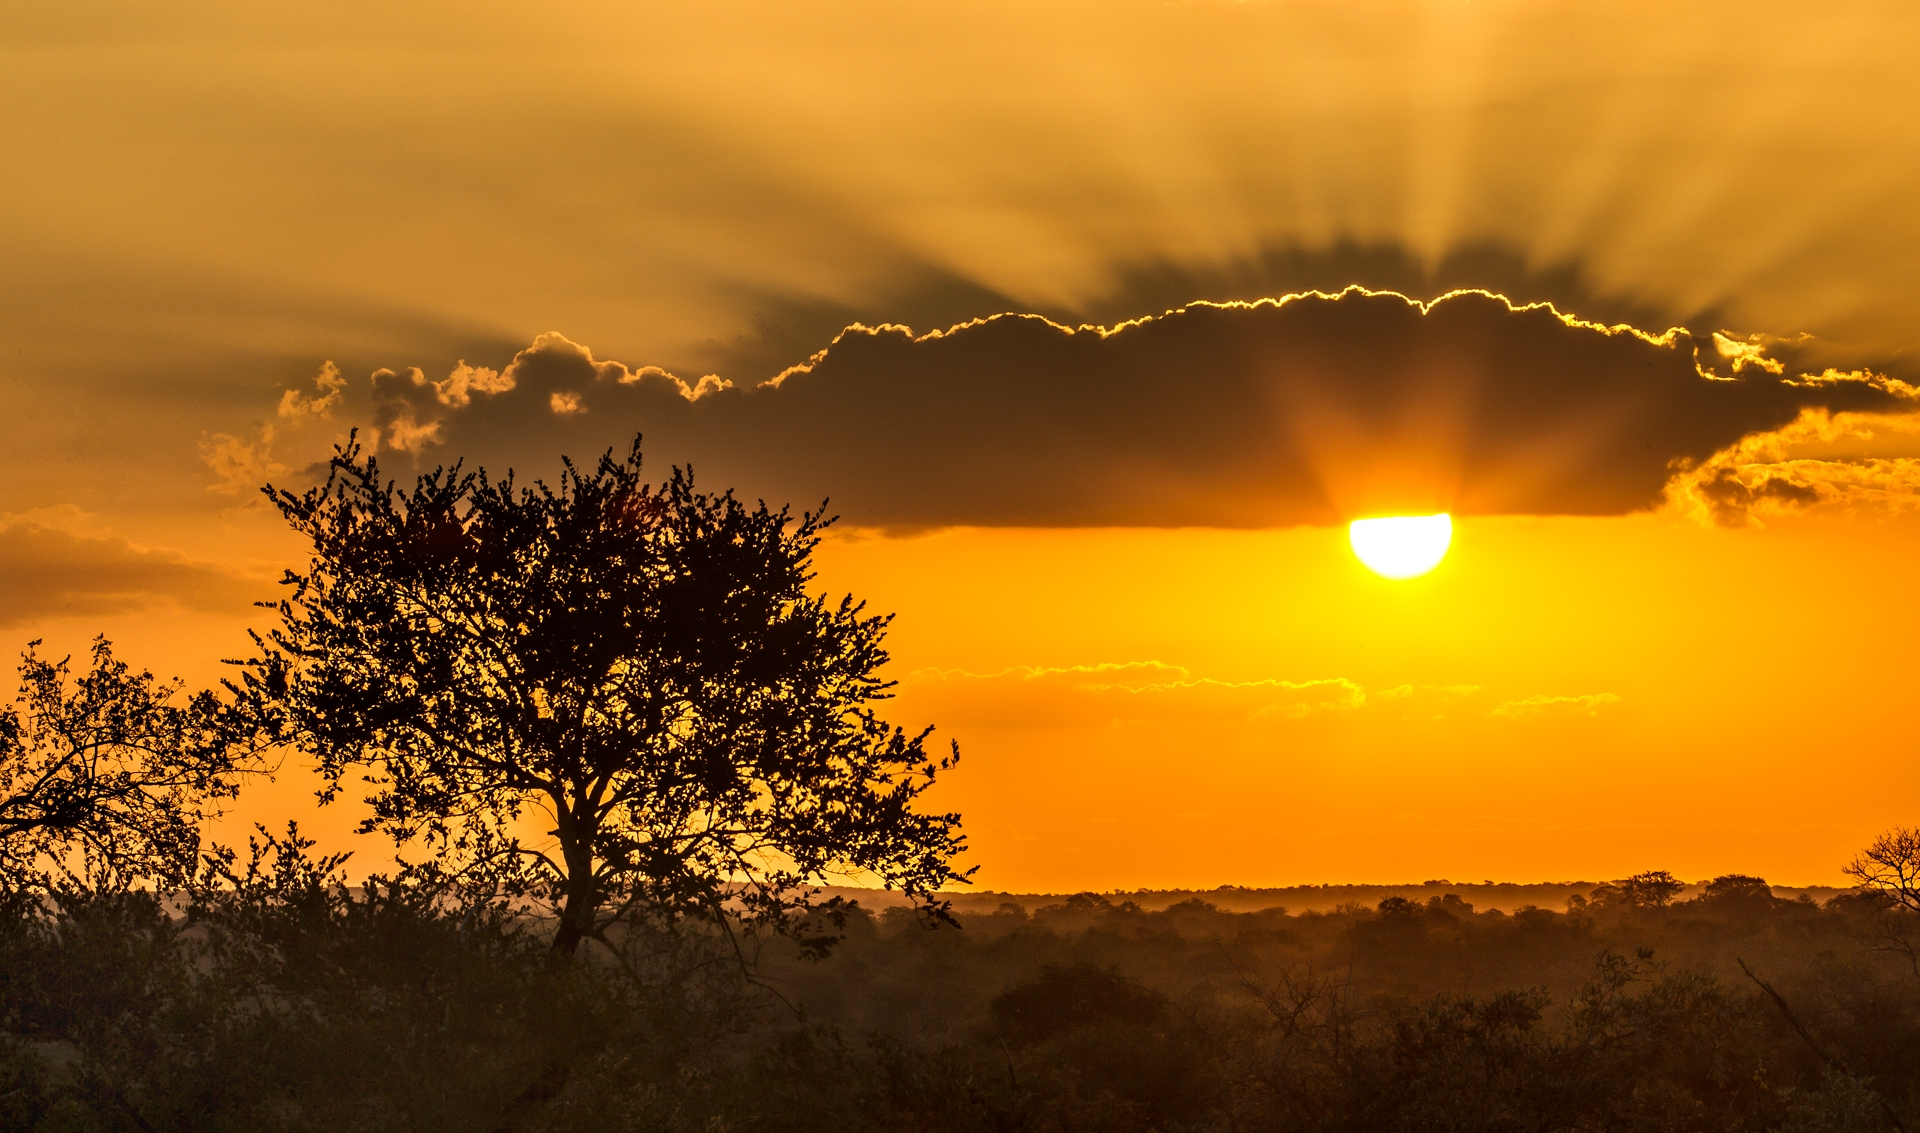 A beautiful sunset overlooks the Botswana bush